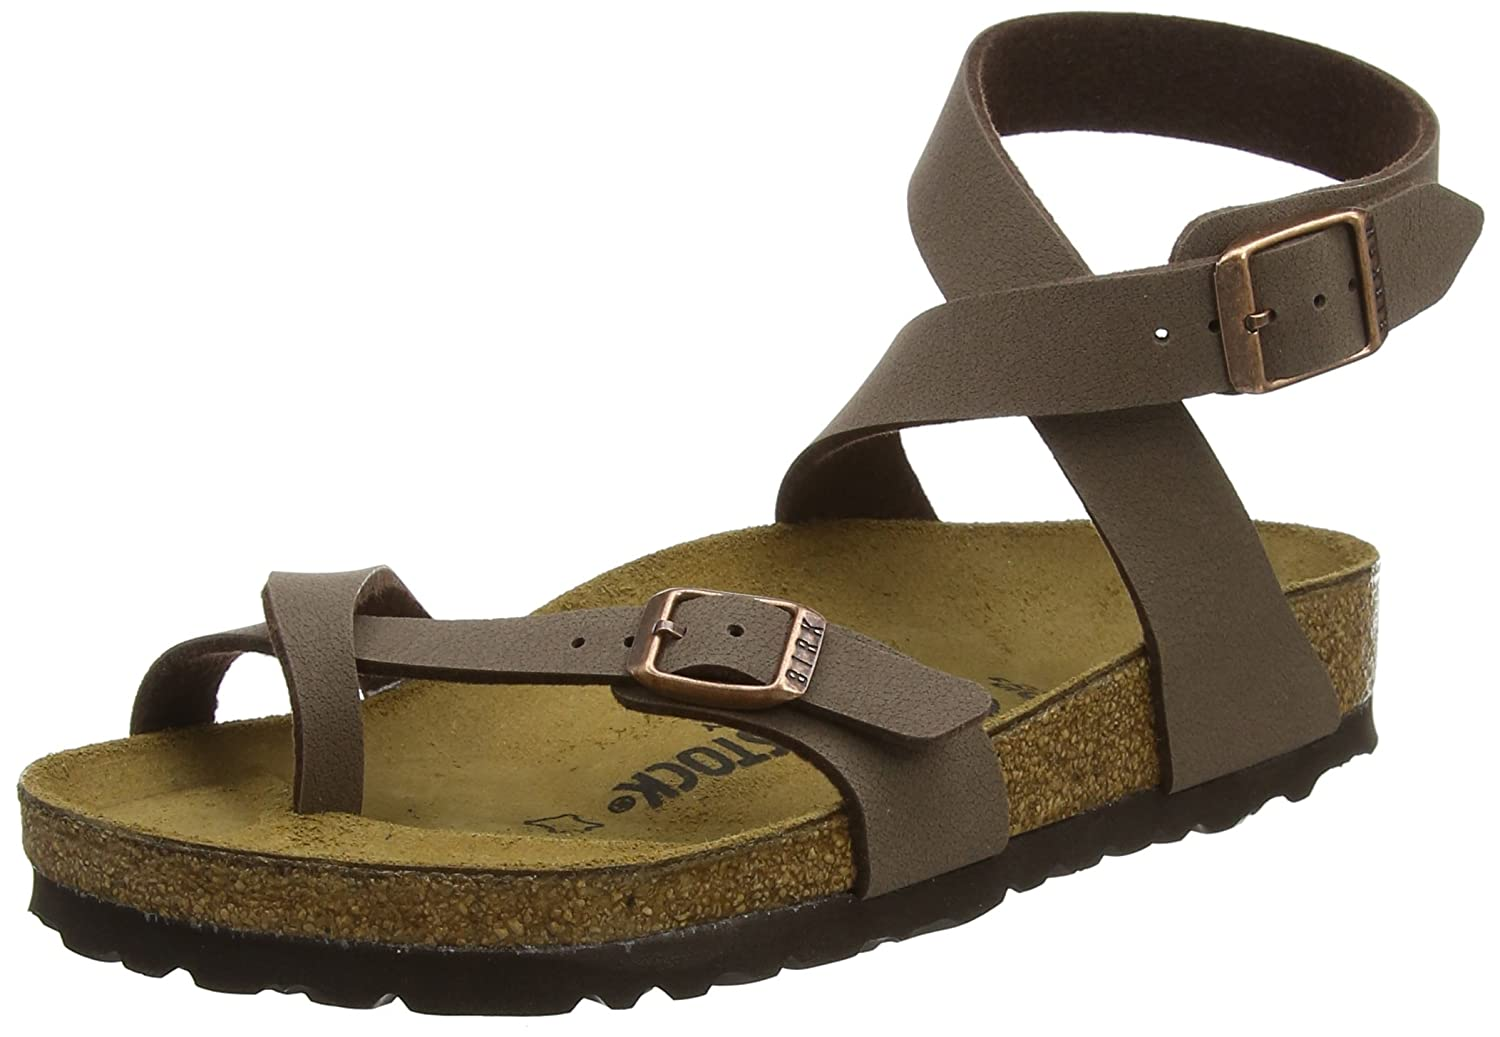 a445bb63f2b Birkenstock Women s Yara Ankle Strap Sandals  Amazon.co.uk  Shoes   Bags